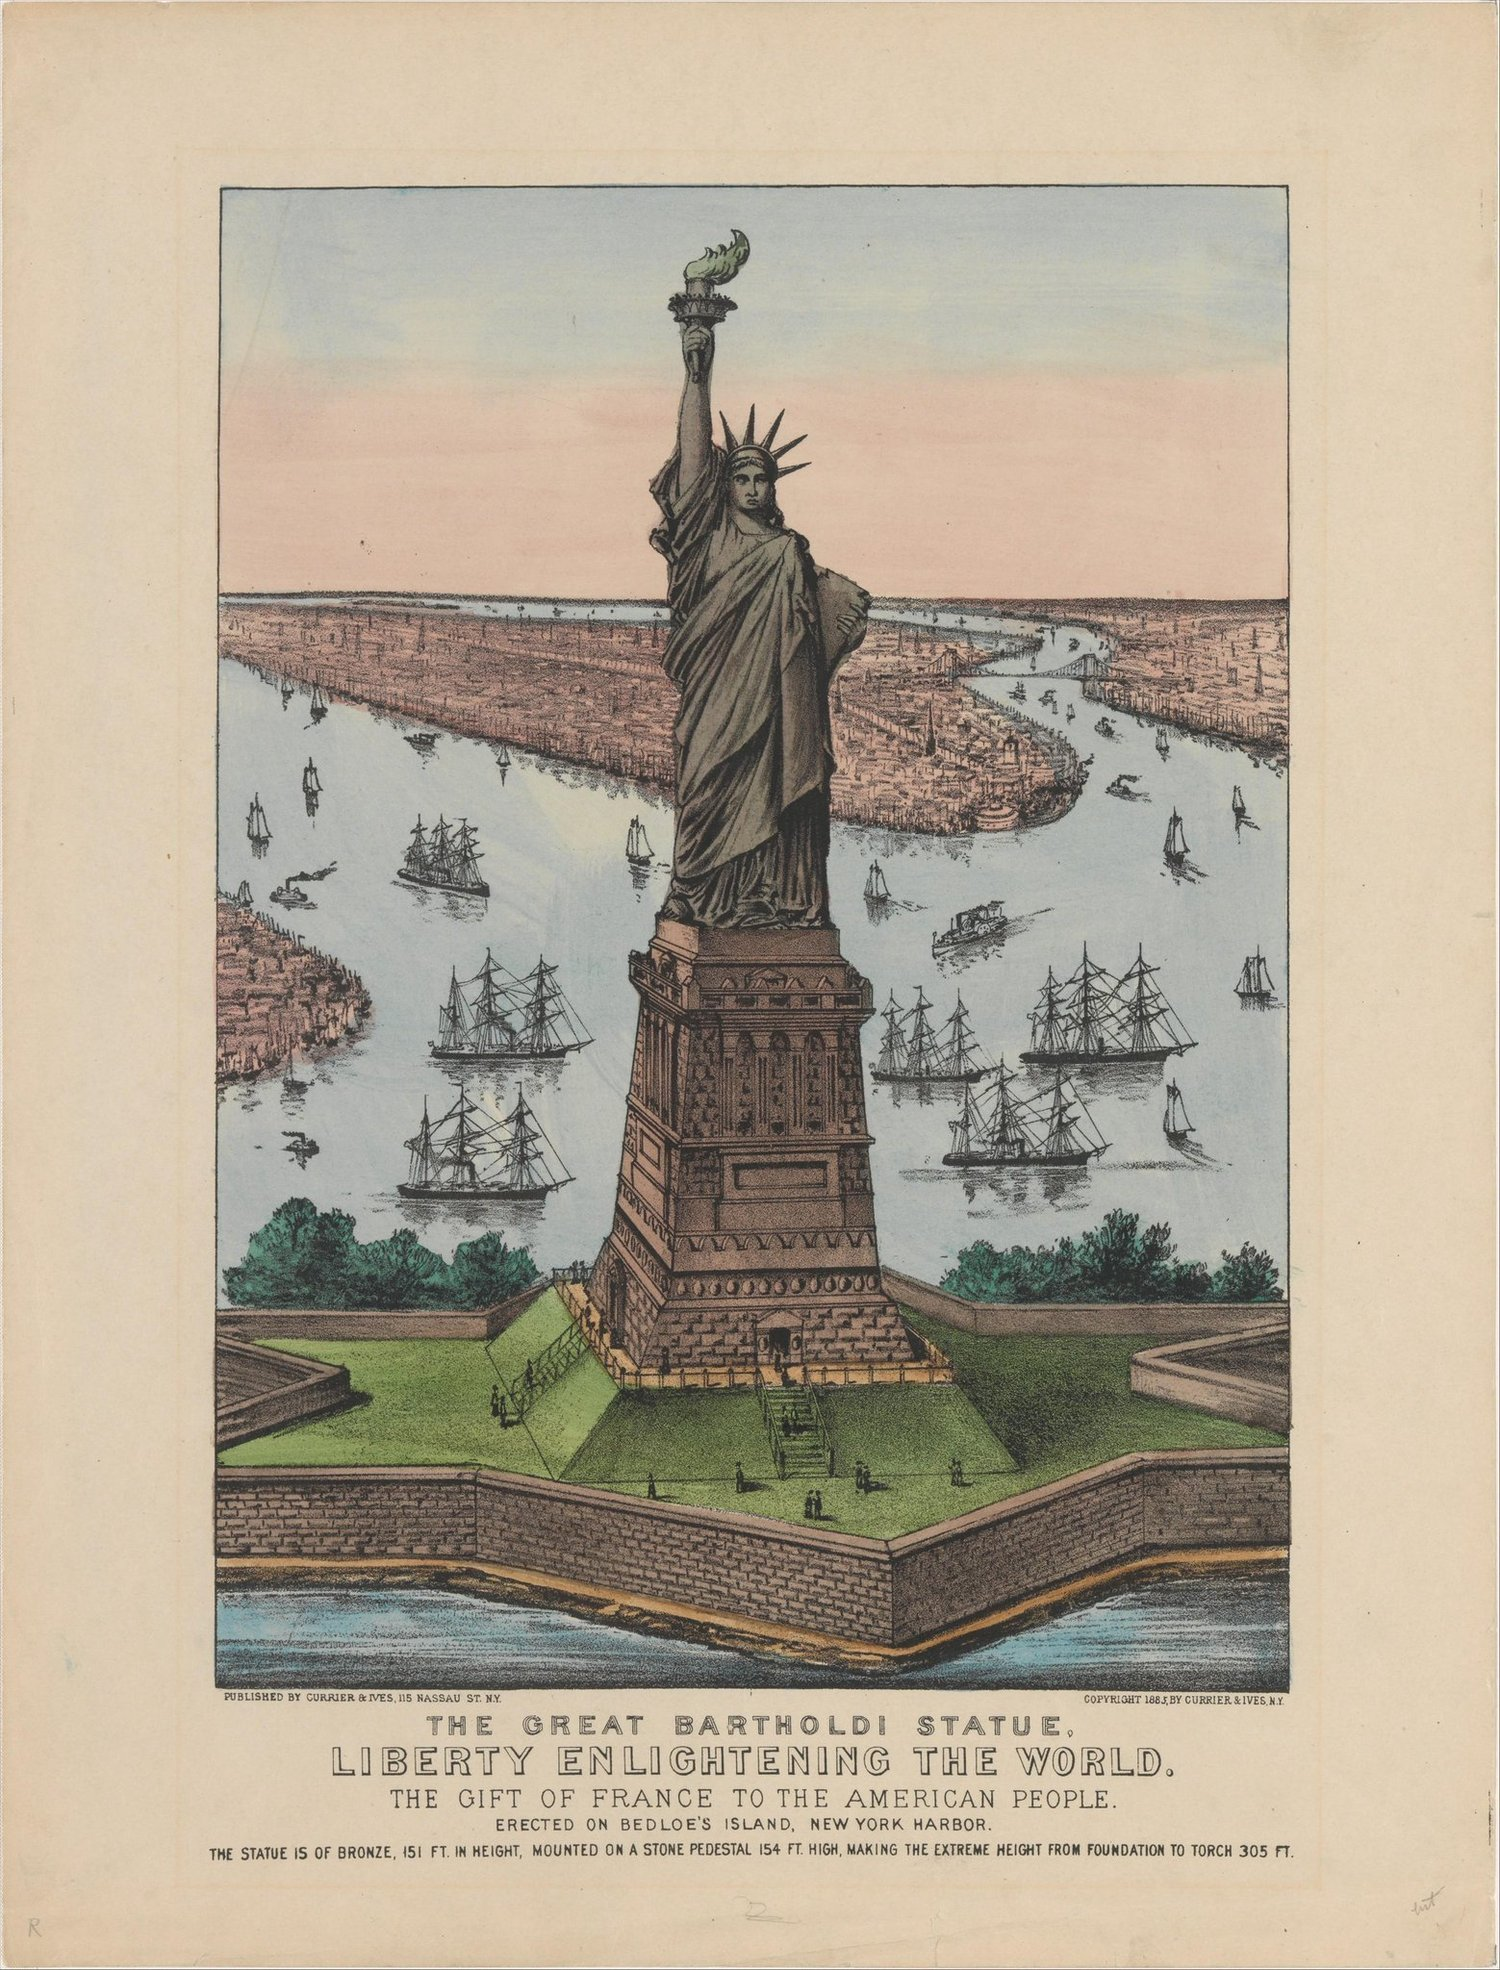 The #StatueofLiberty arrived in New York Harbor from France on this day in 1885. http://t.co/SQfmAz0LkL http://t.co/g2aSaCFEcM